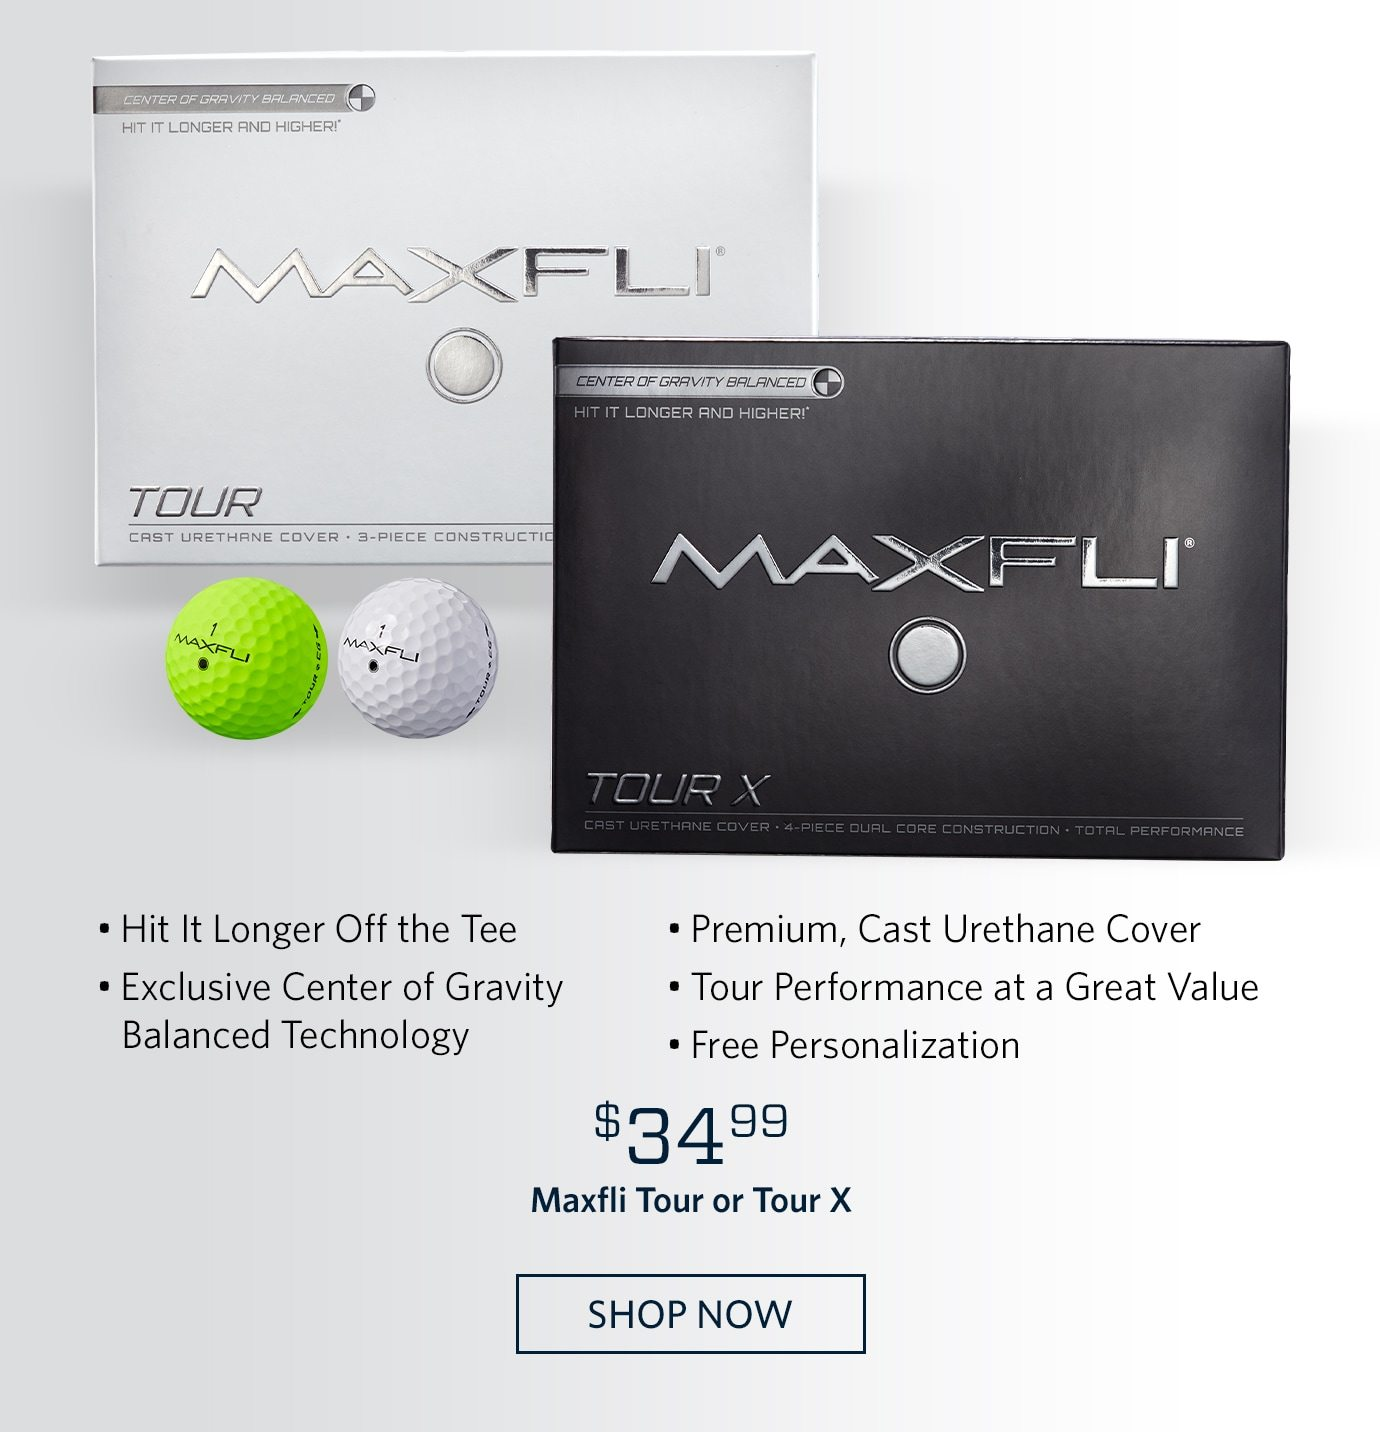 • Hit It Longer Off the Tee • Exclusive Center of Gravity Balanced Technology • Premium, Cast Urethane Cover • Tour Performance at a Great Value • Free Personalization | $34.99 Maxfli Tour or Tour X | SHOP NOW